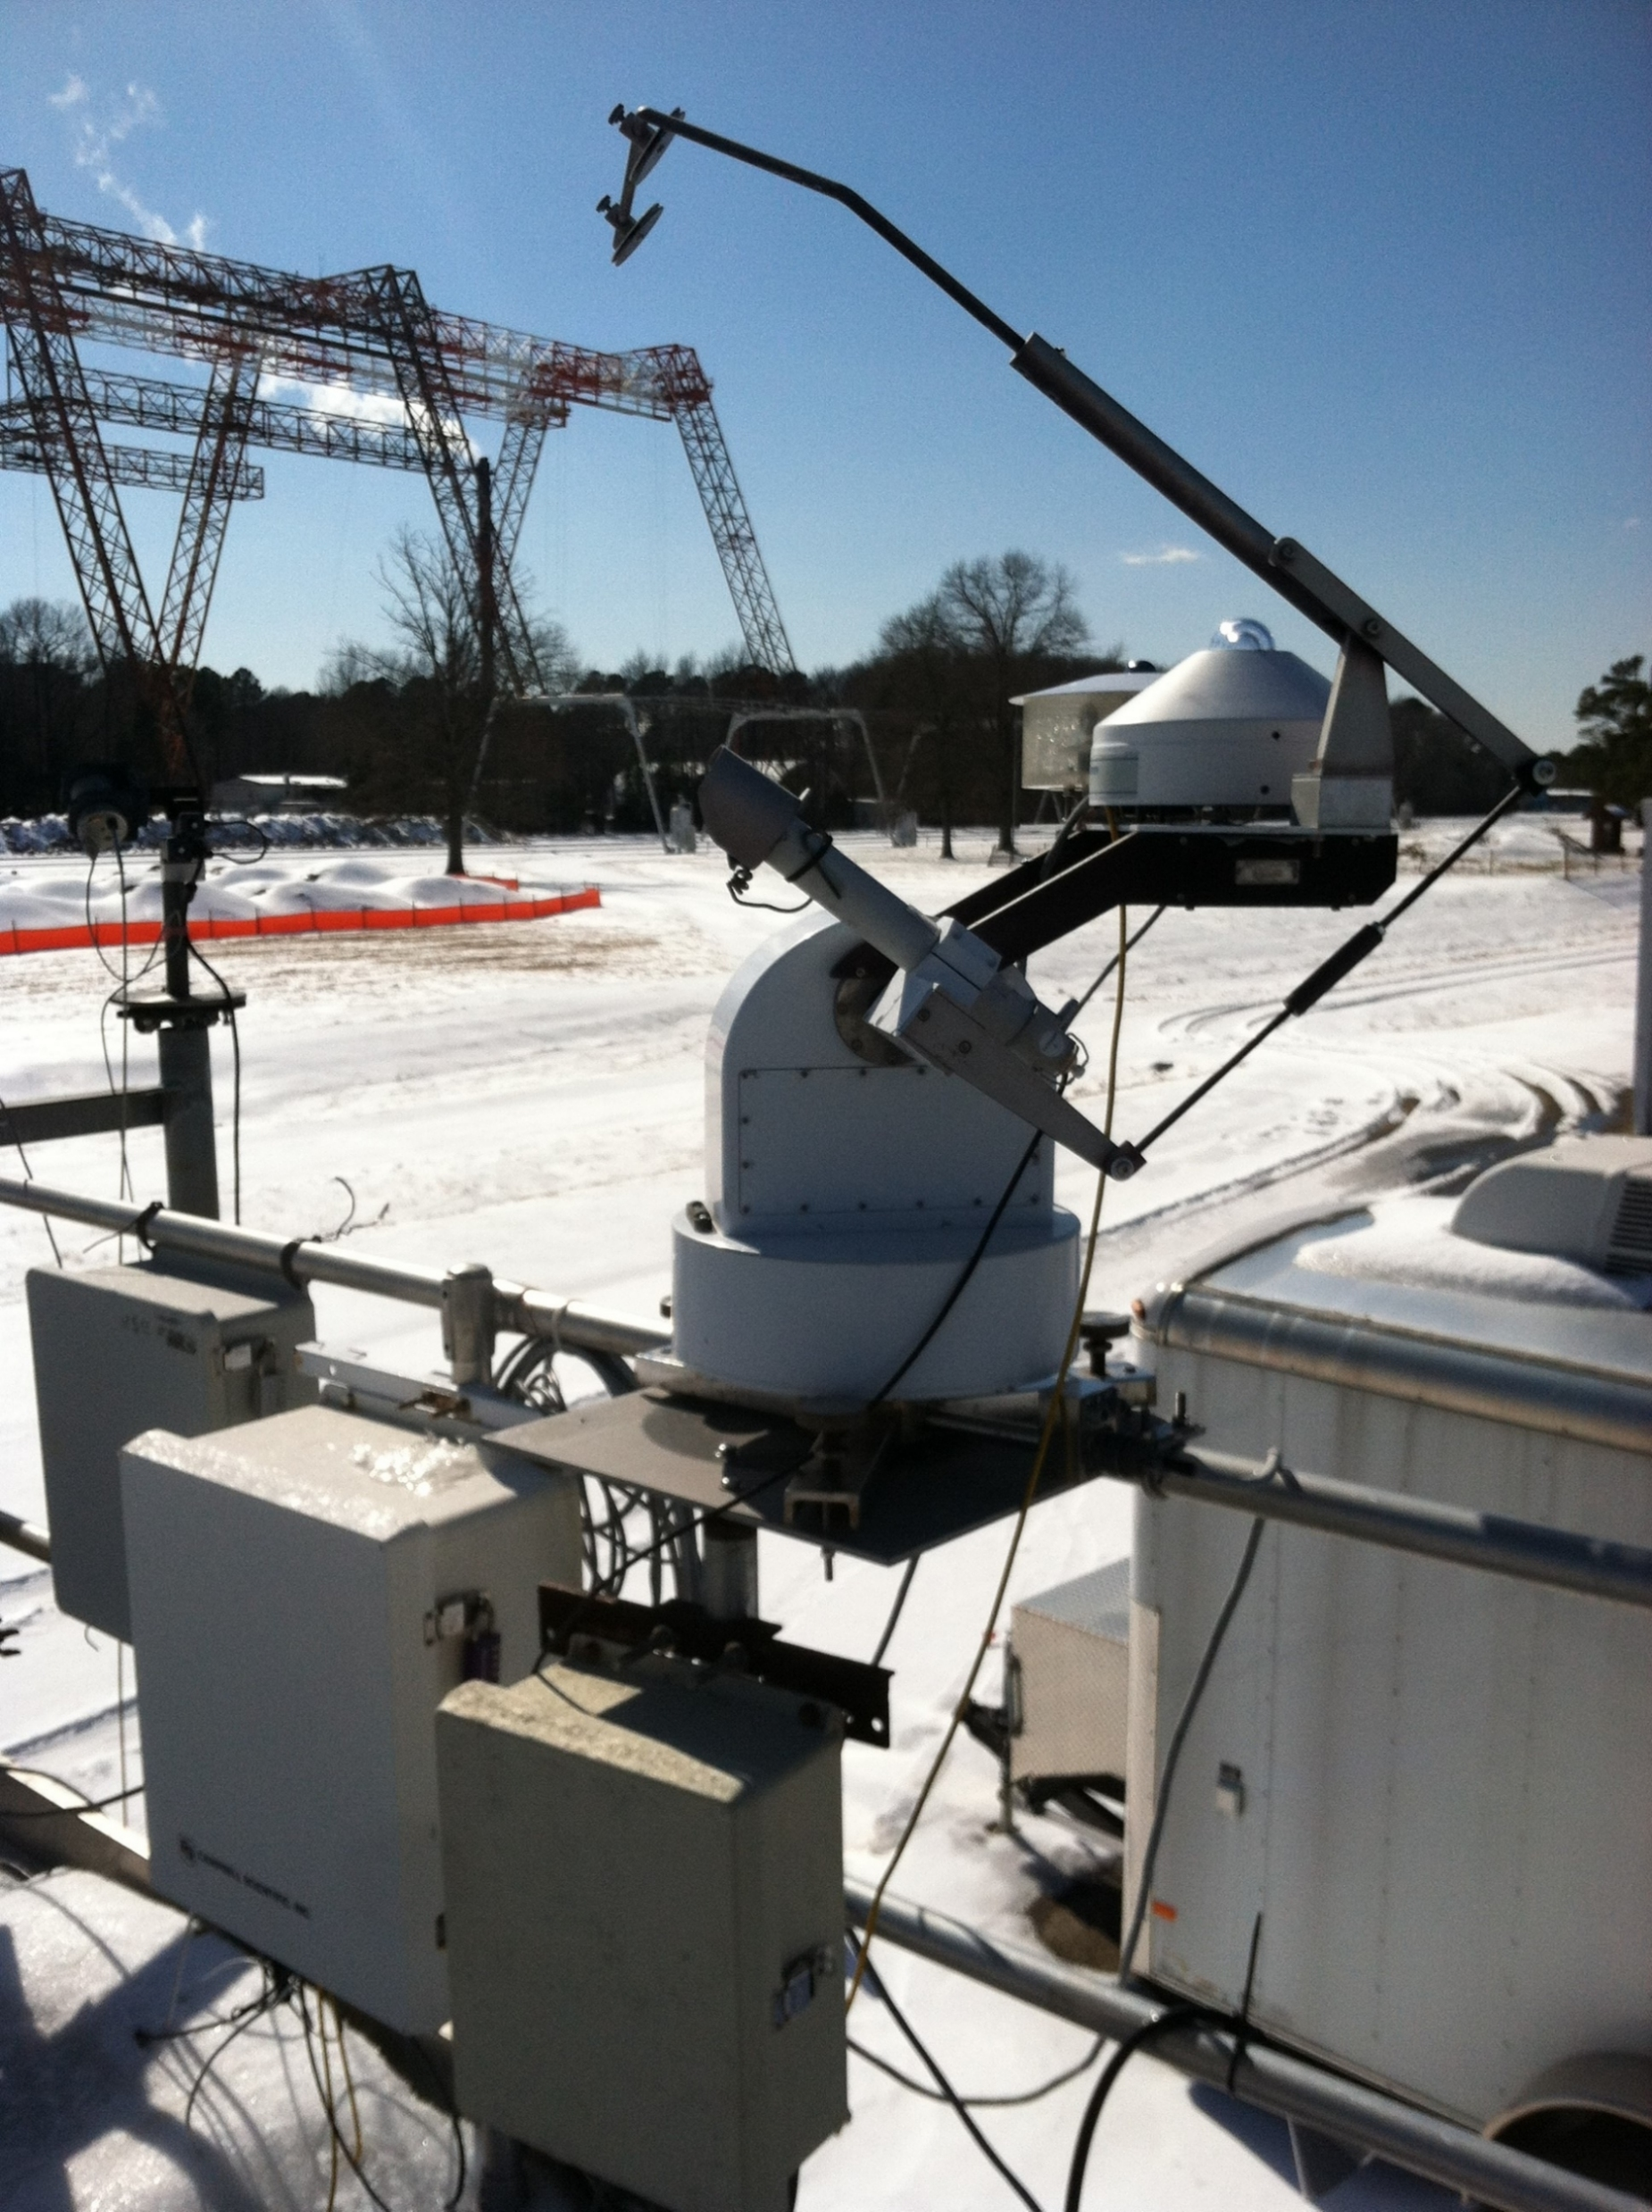 The BSRN-LRC sun tracker at the NASA Langley Research Center on a snowy day (02/20/2015)